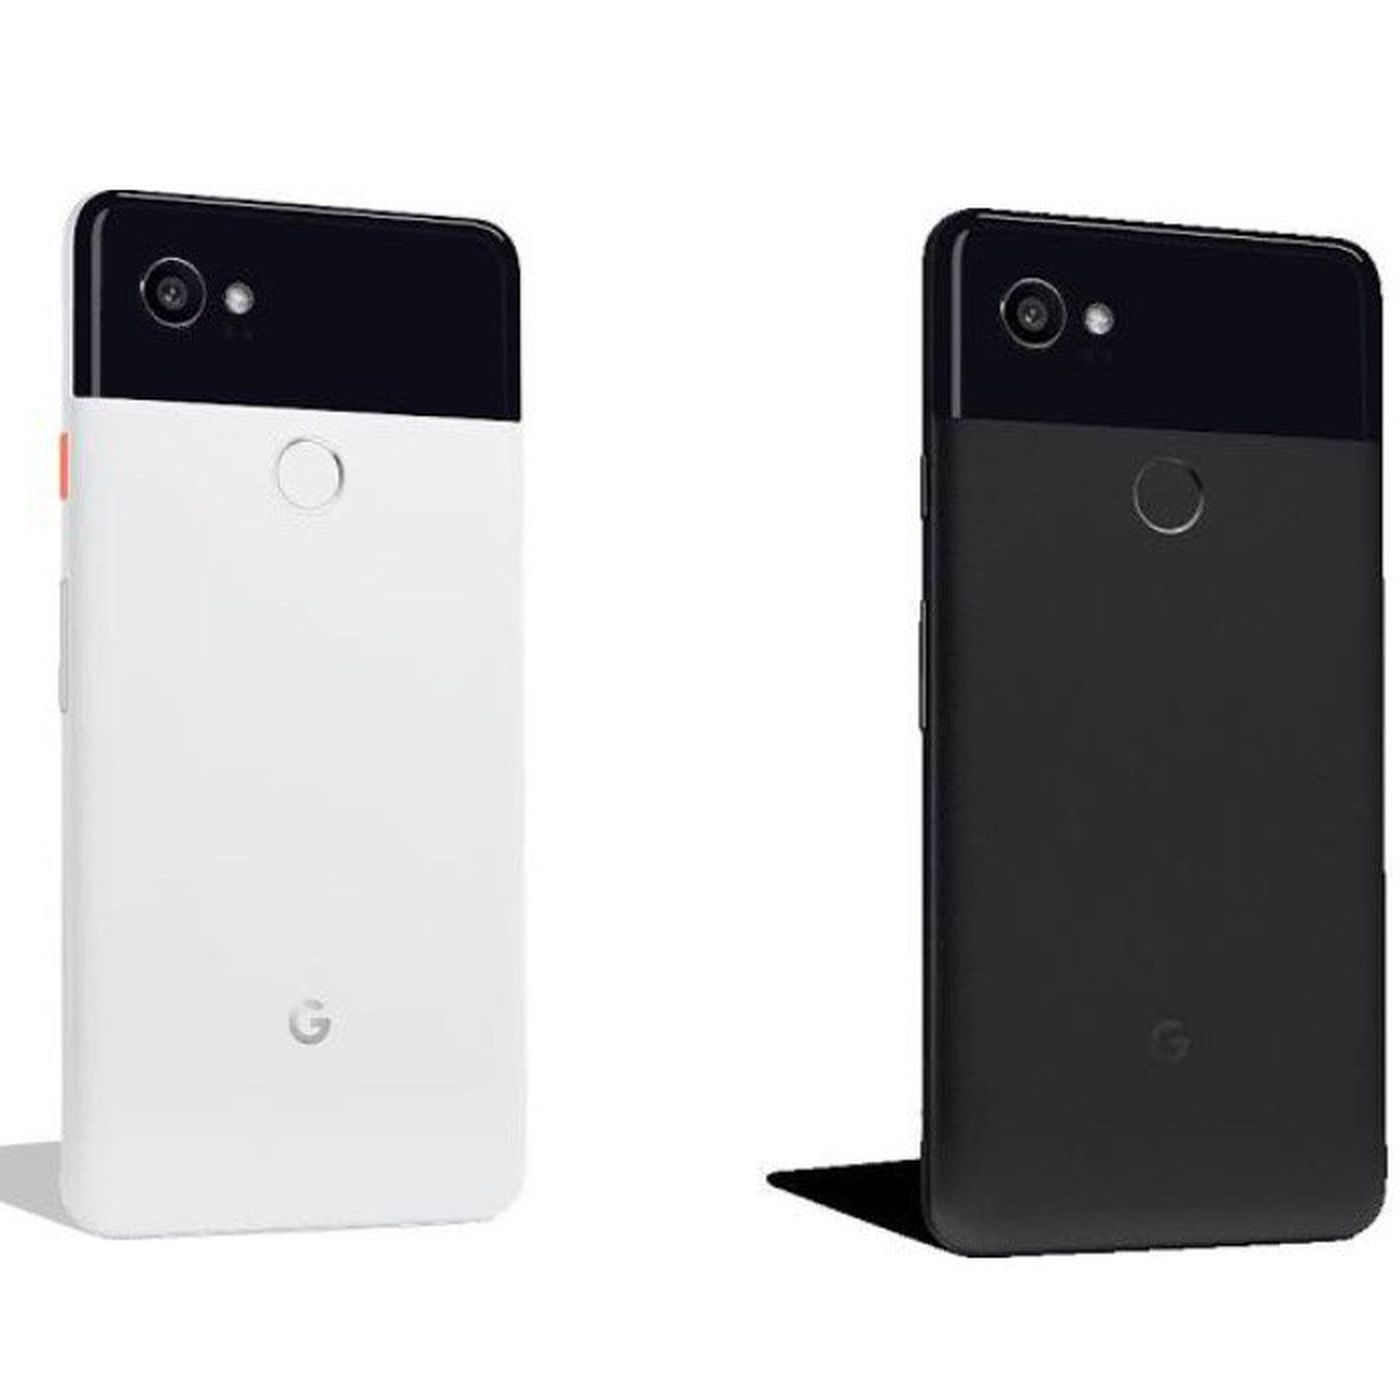 Google pixel 2 xl will reportedly cost 849 for 64gb 949 for 128gb